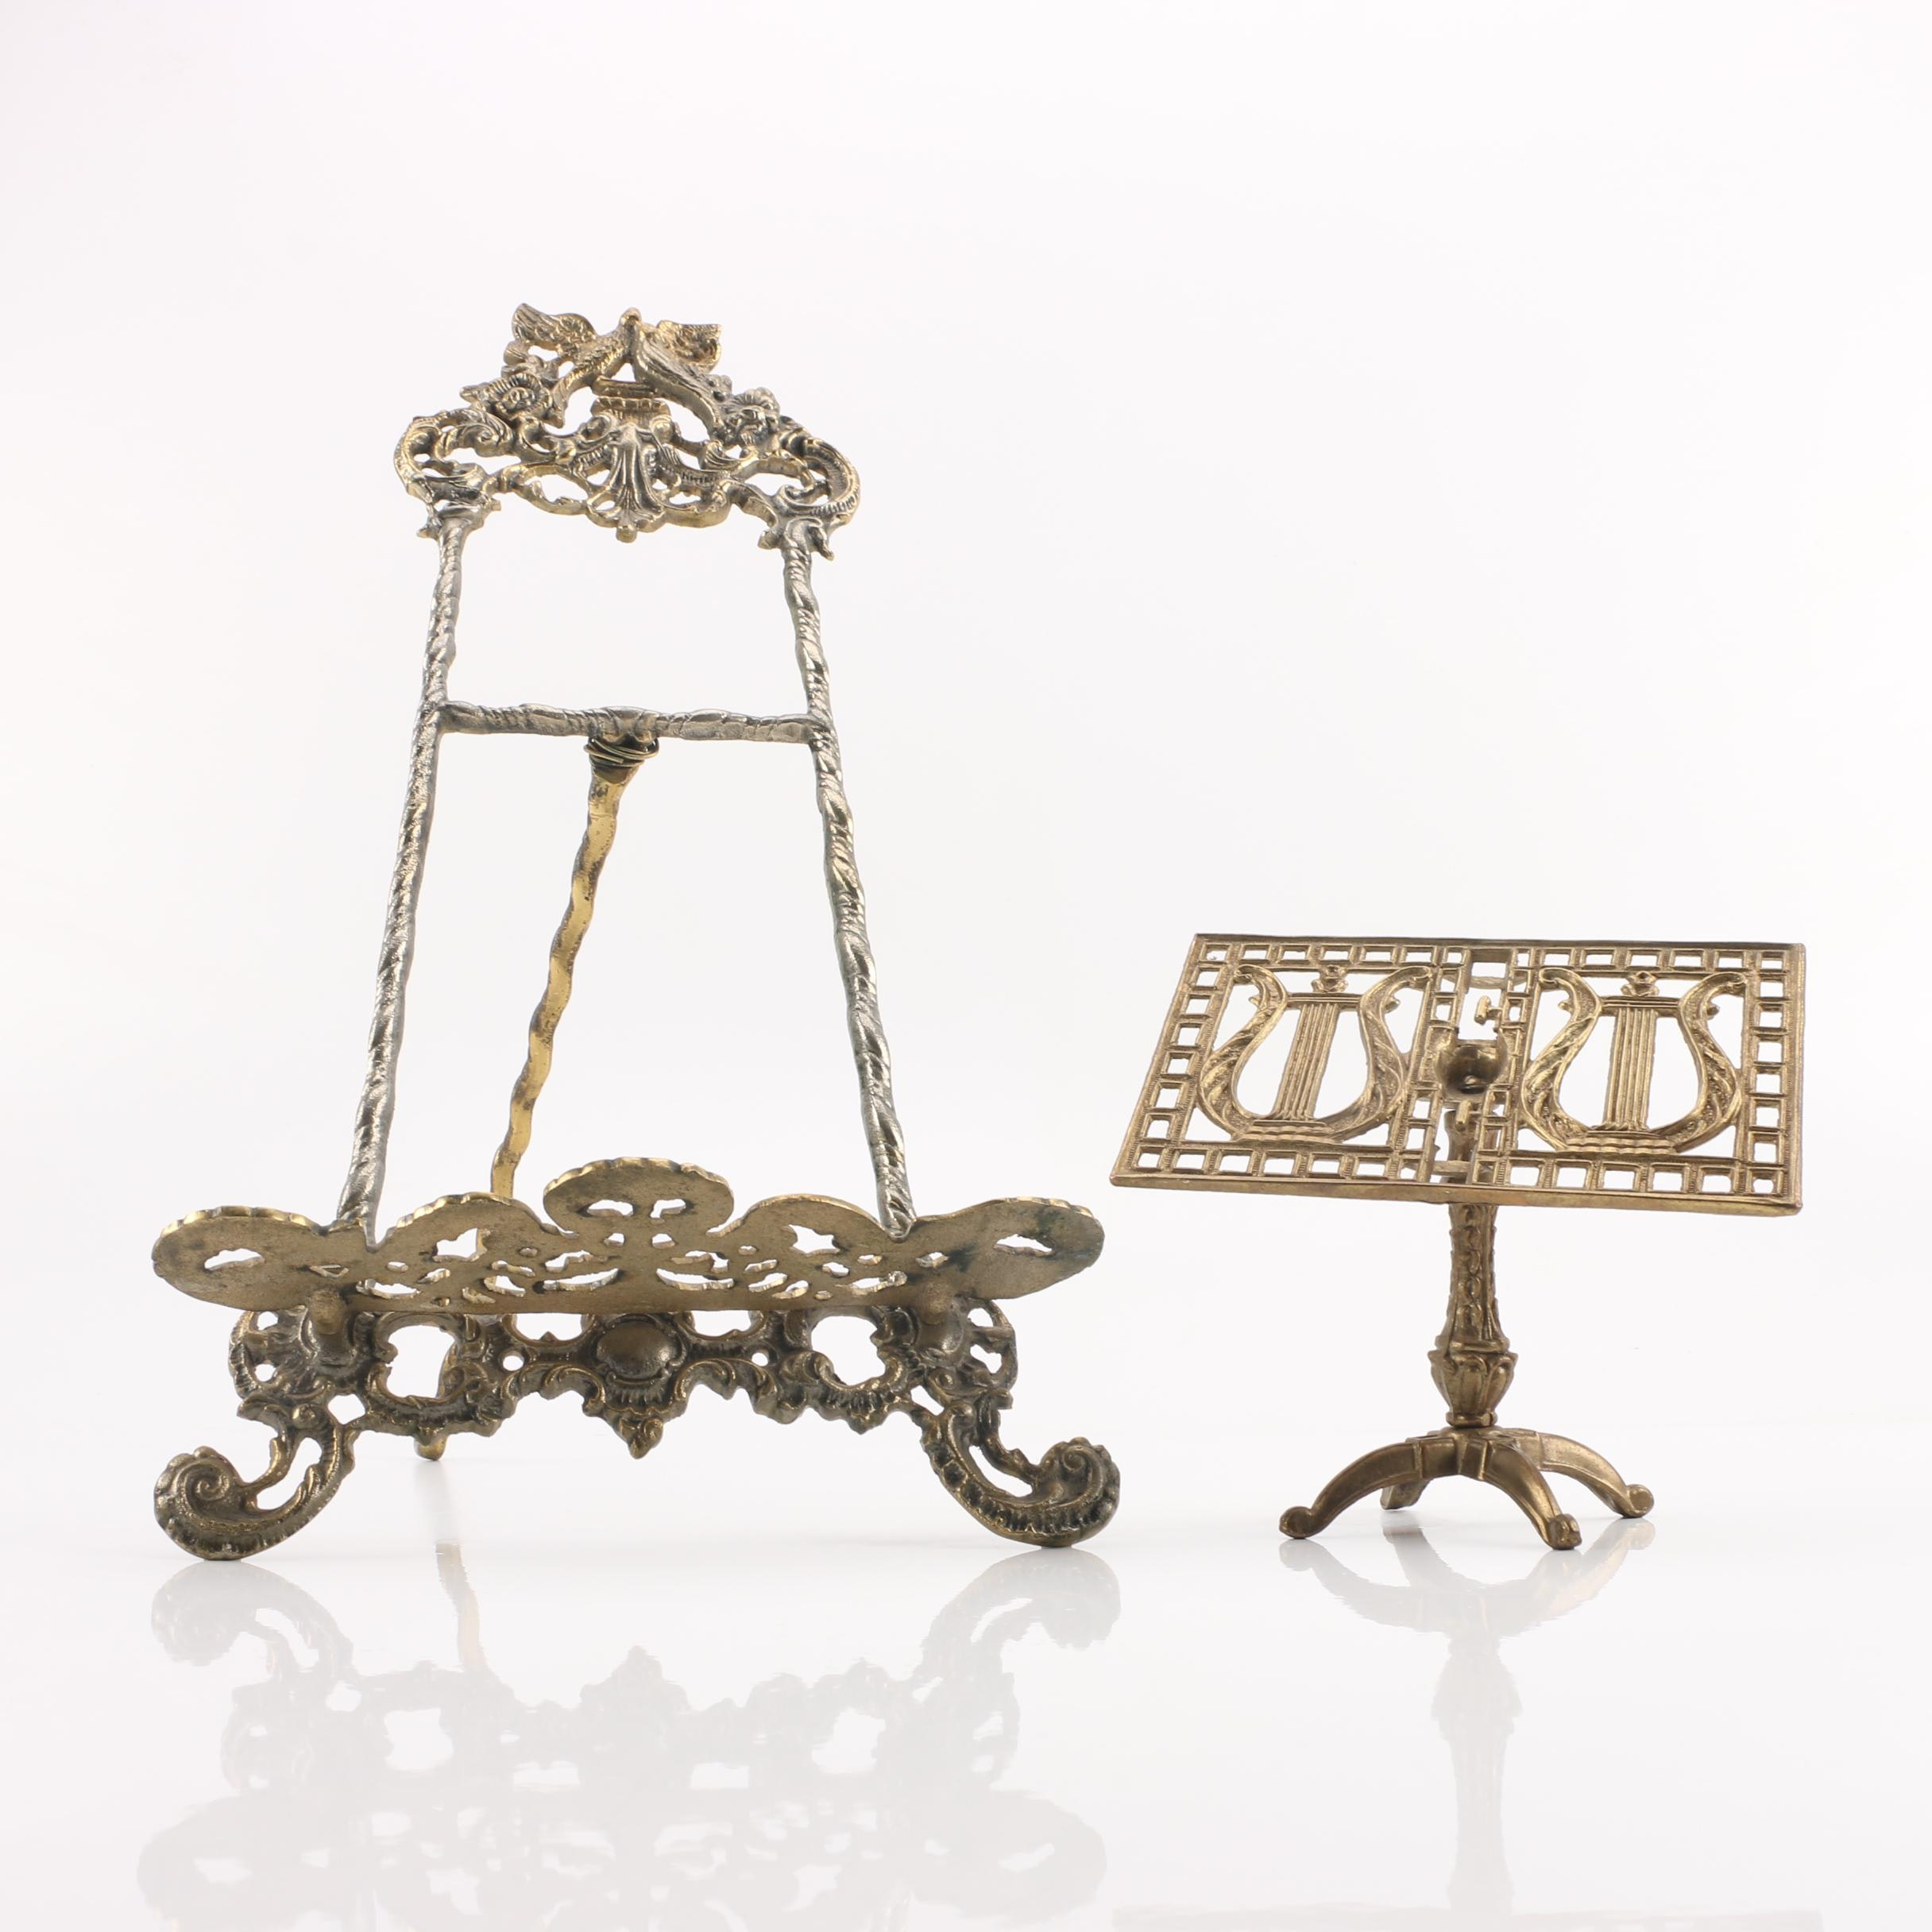 Highly Ornate Brass Easels